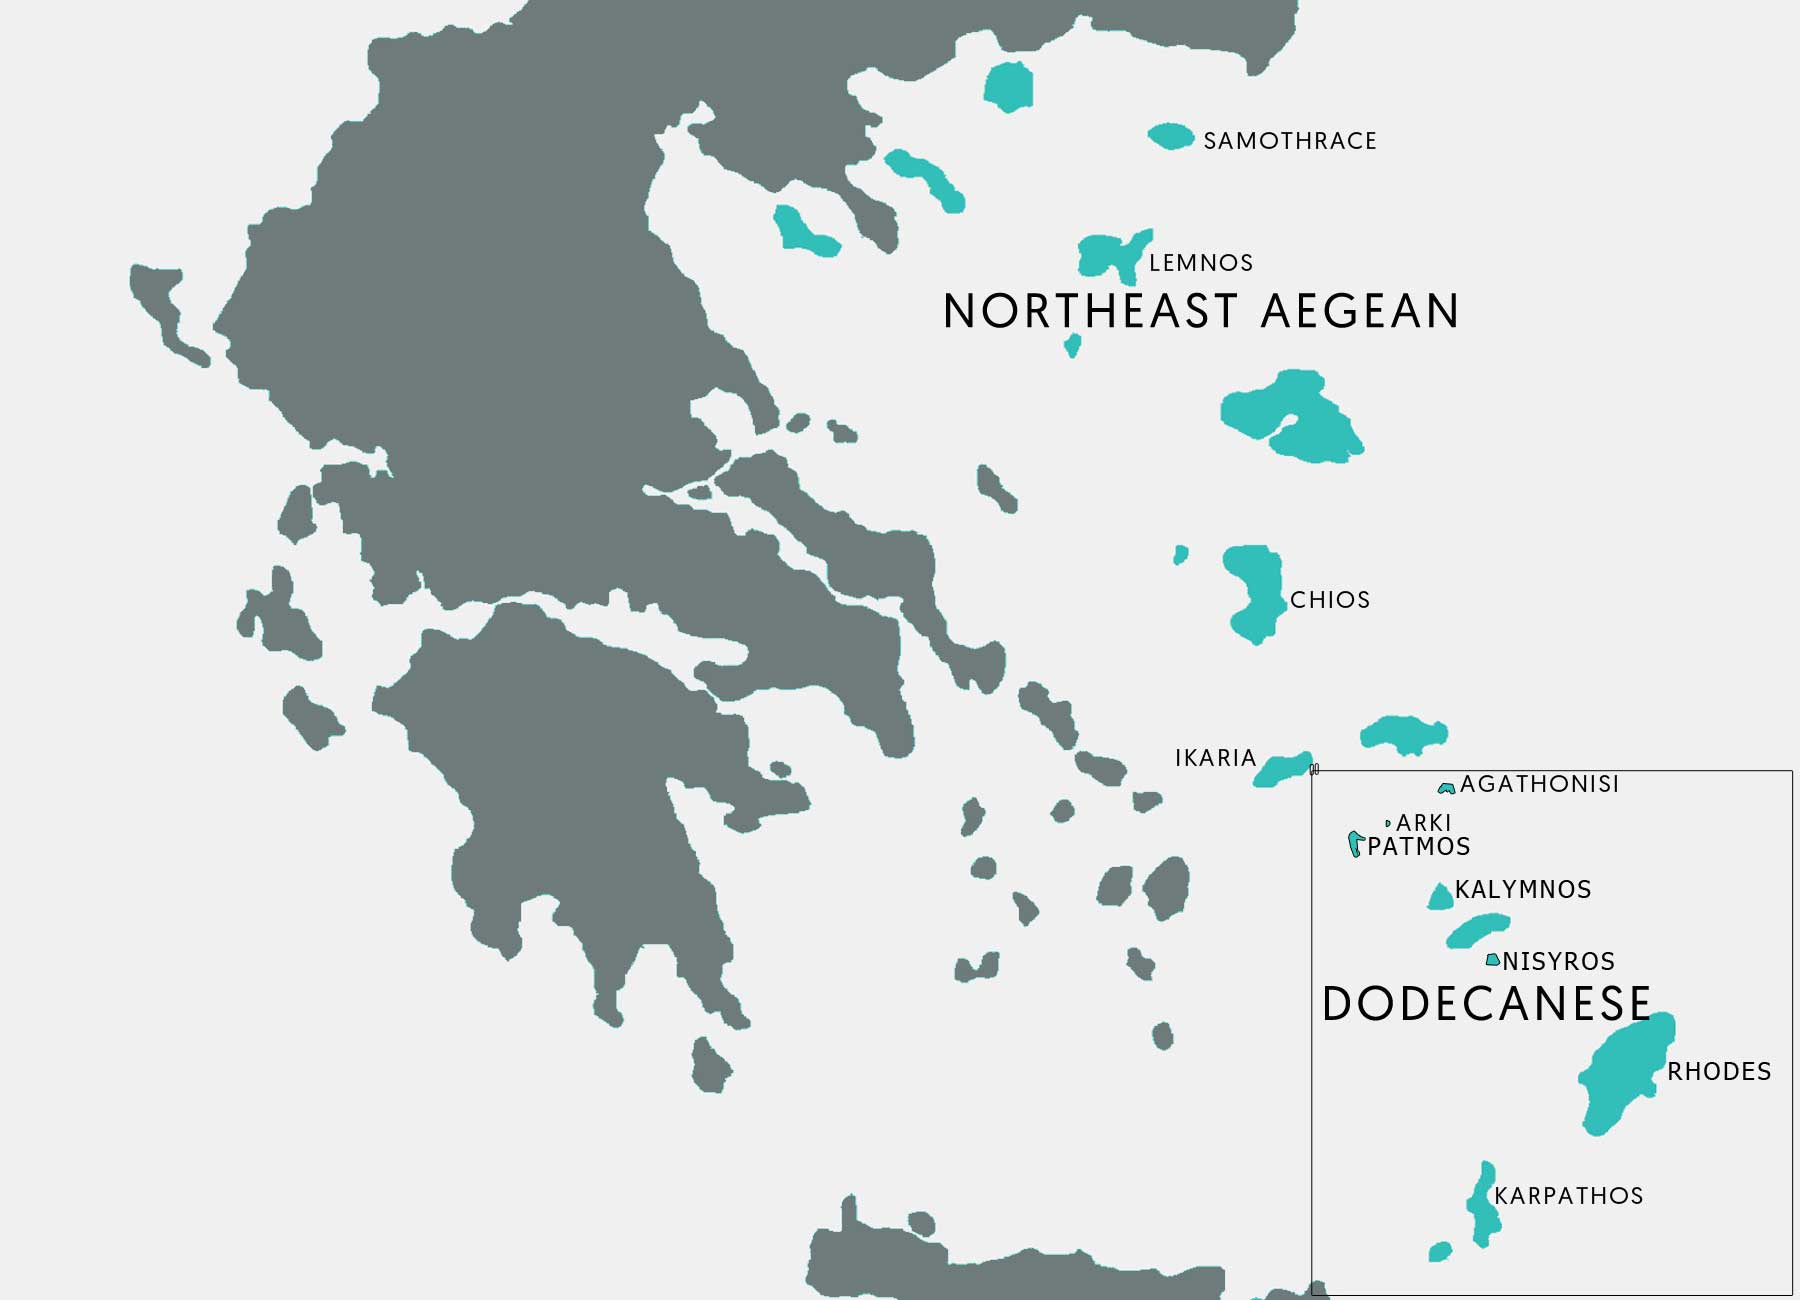 The Greek Islands: Dodecanese and Northeast Aegean | Destinations ...